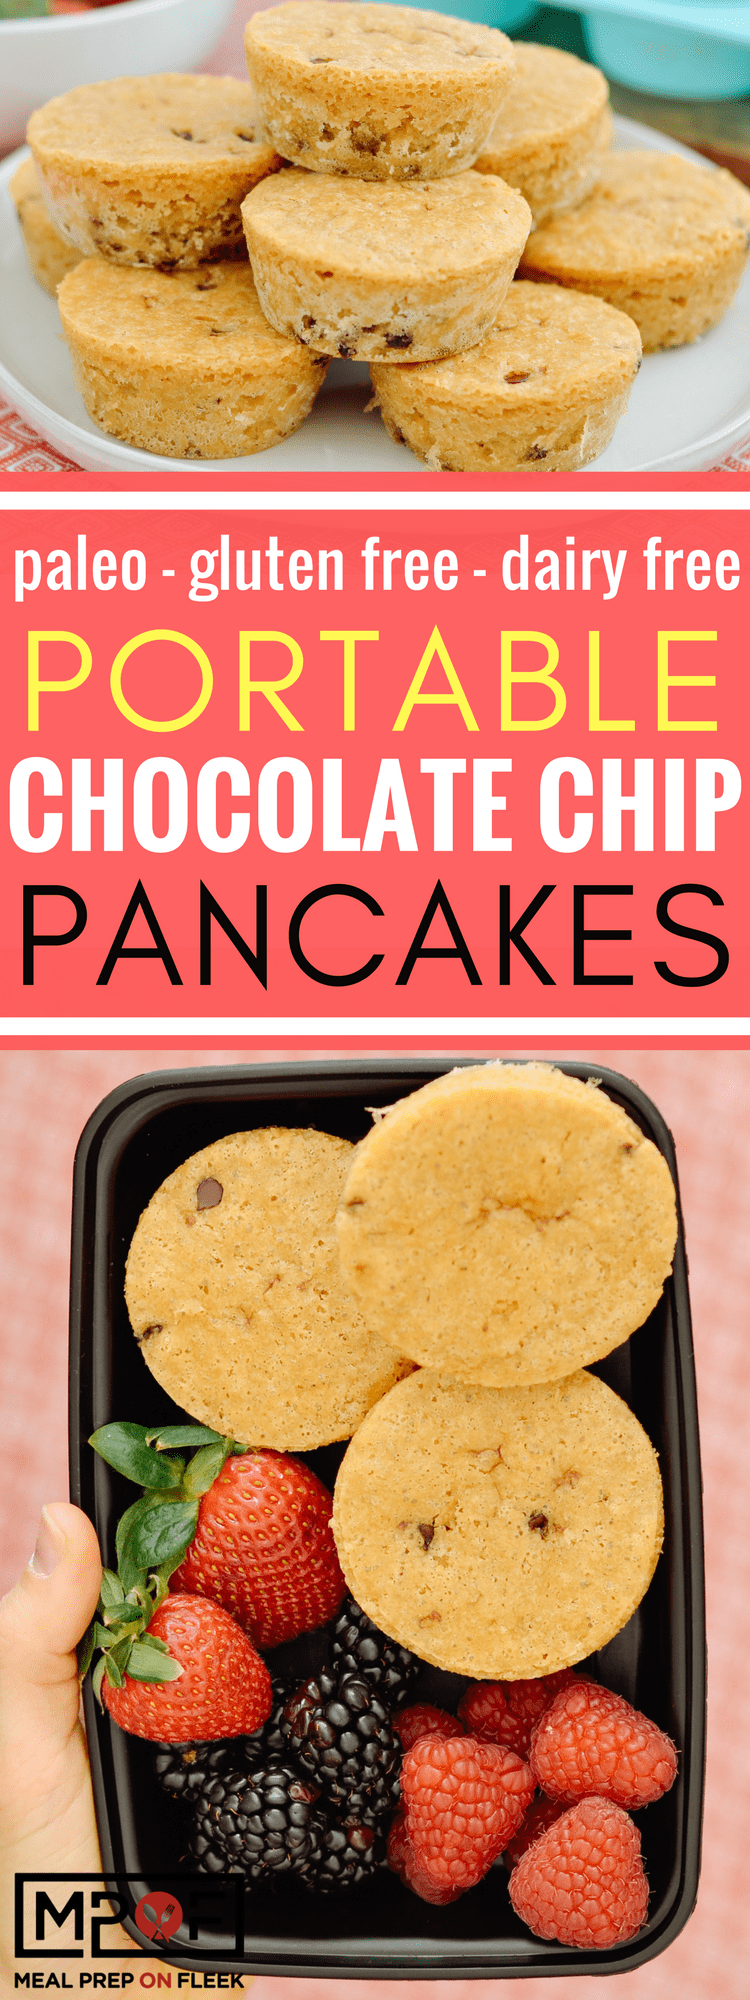 Portable Chocolate Chip Pancakes blog